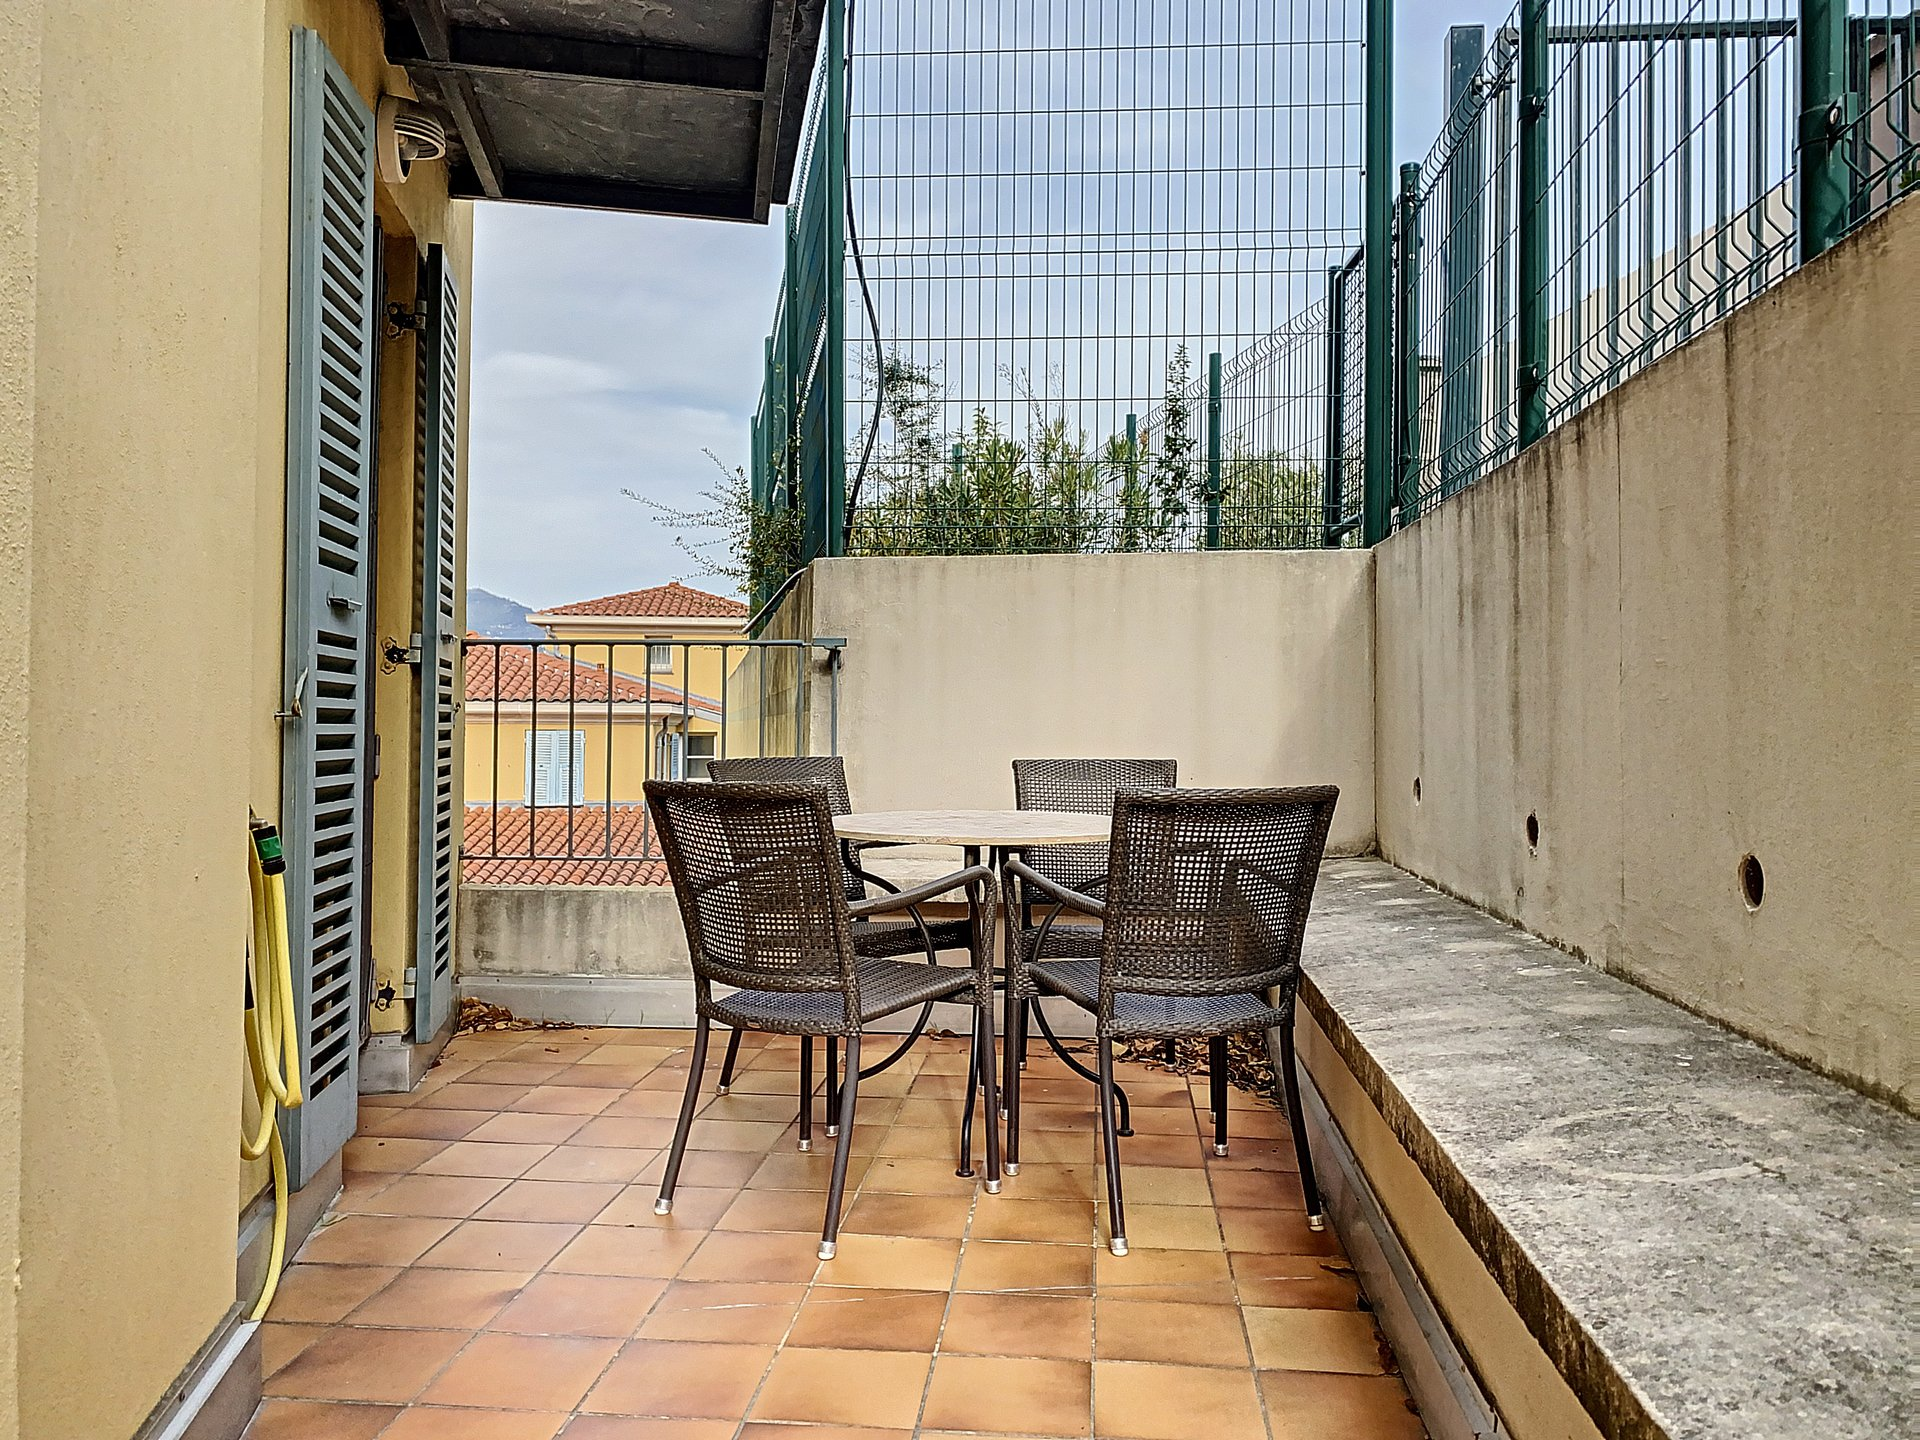 Appartement - NICE - 06300 - 1 chambre - 2 pièces